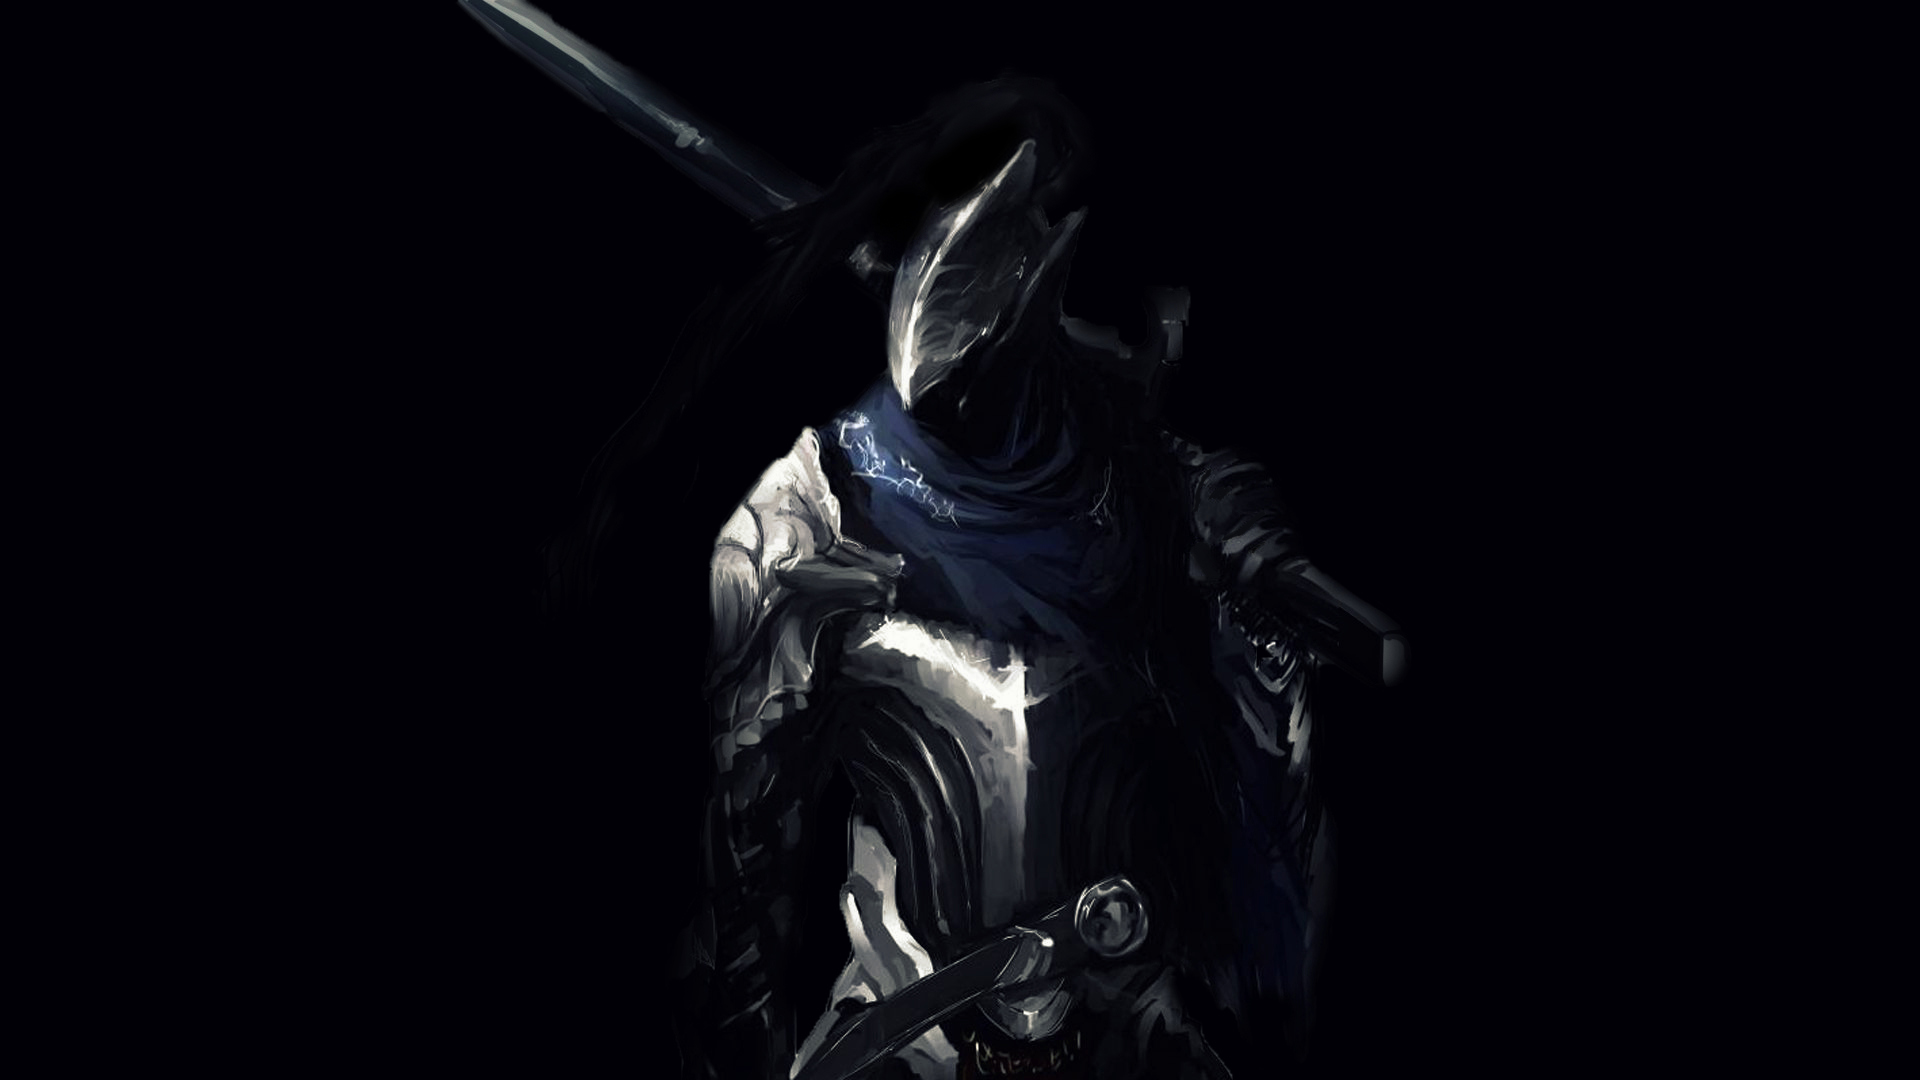 Artorias Dark Abyss Wallpaper By Raialexandre On Deviantart